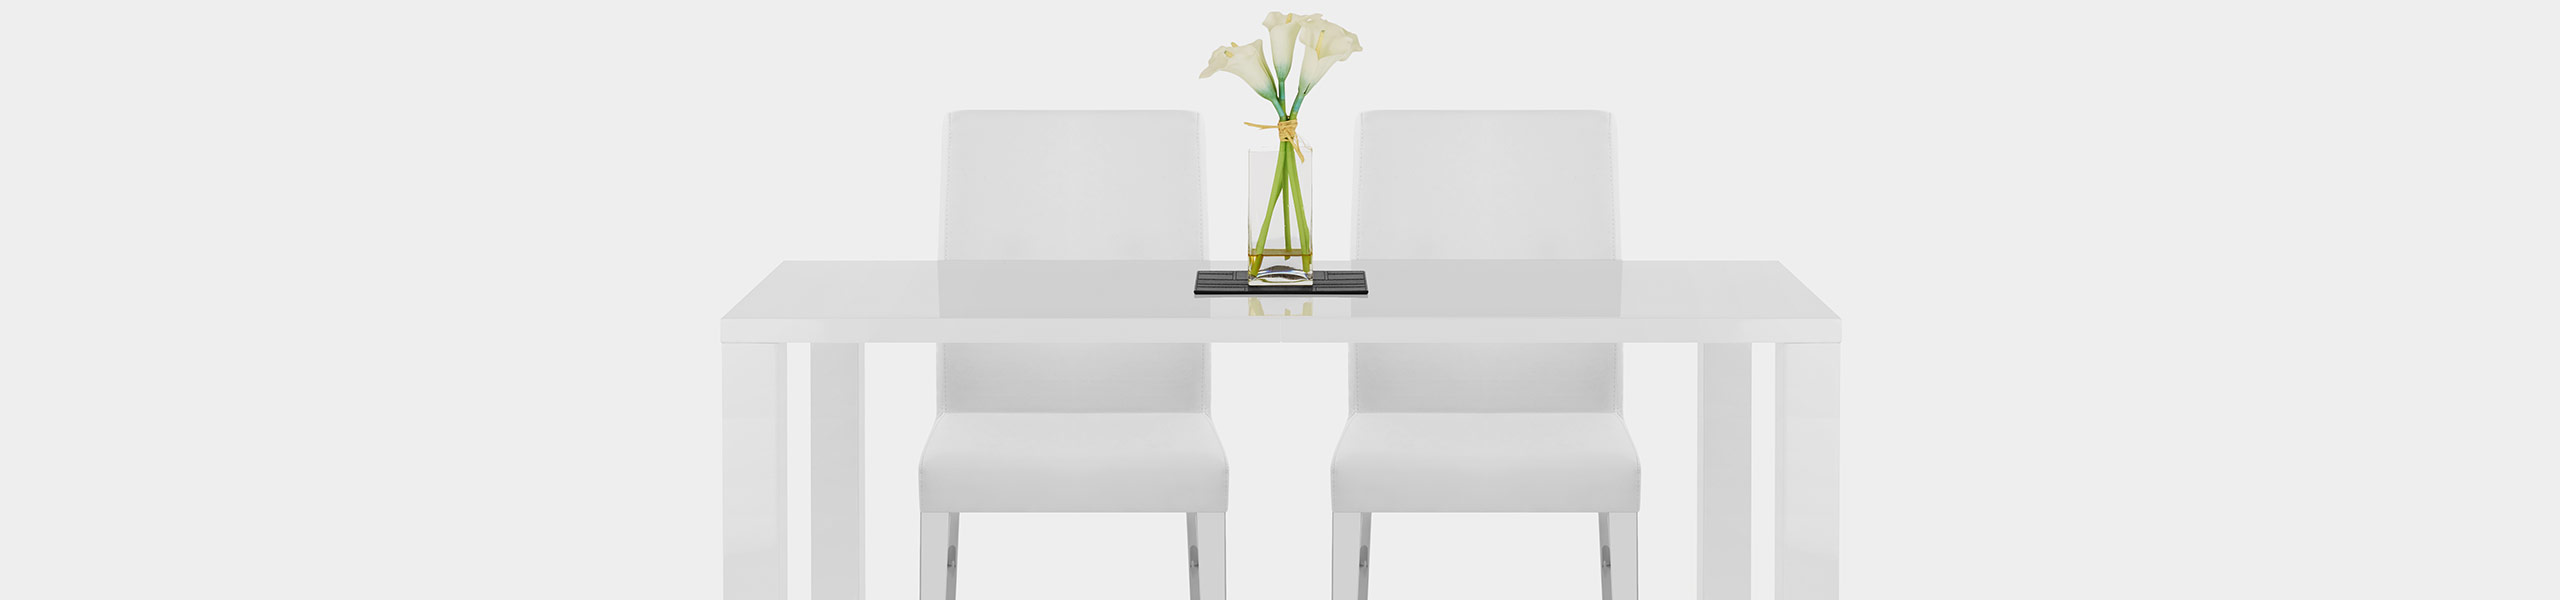 Dash Dining Chair White Video Banner